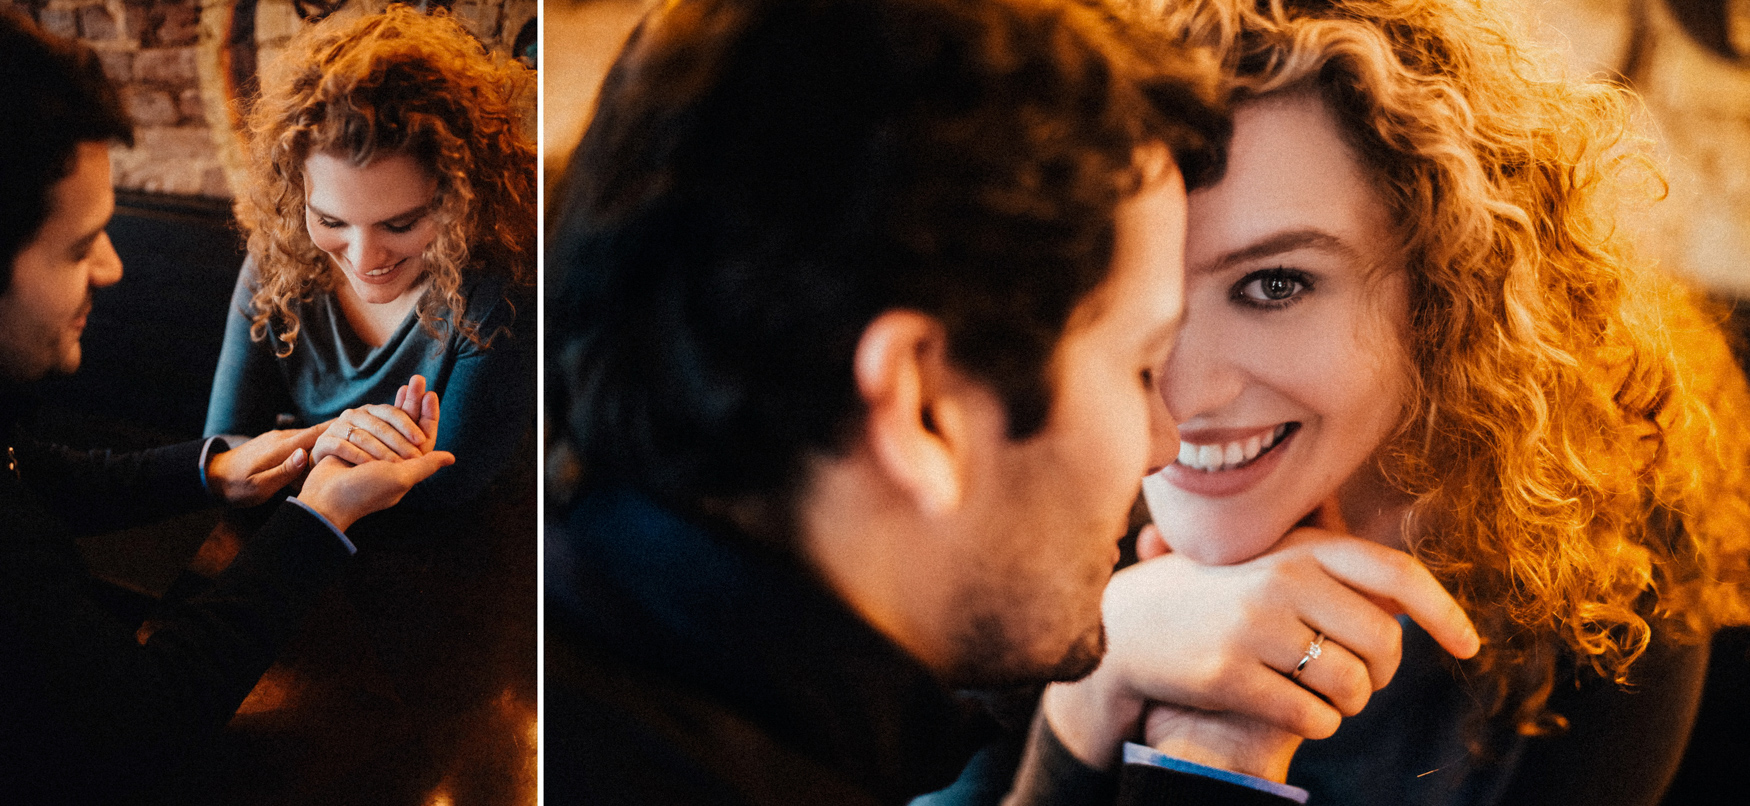 nyc winter snowy manthattan engagement session 007.jpg